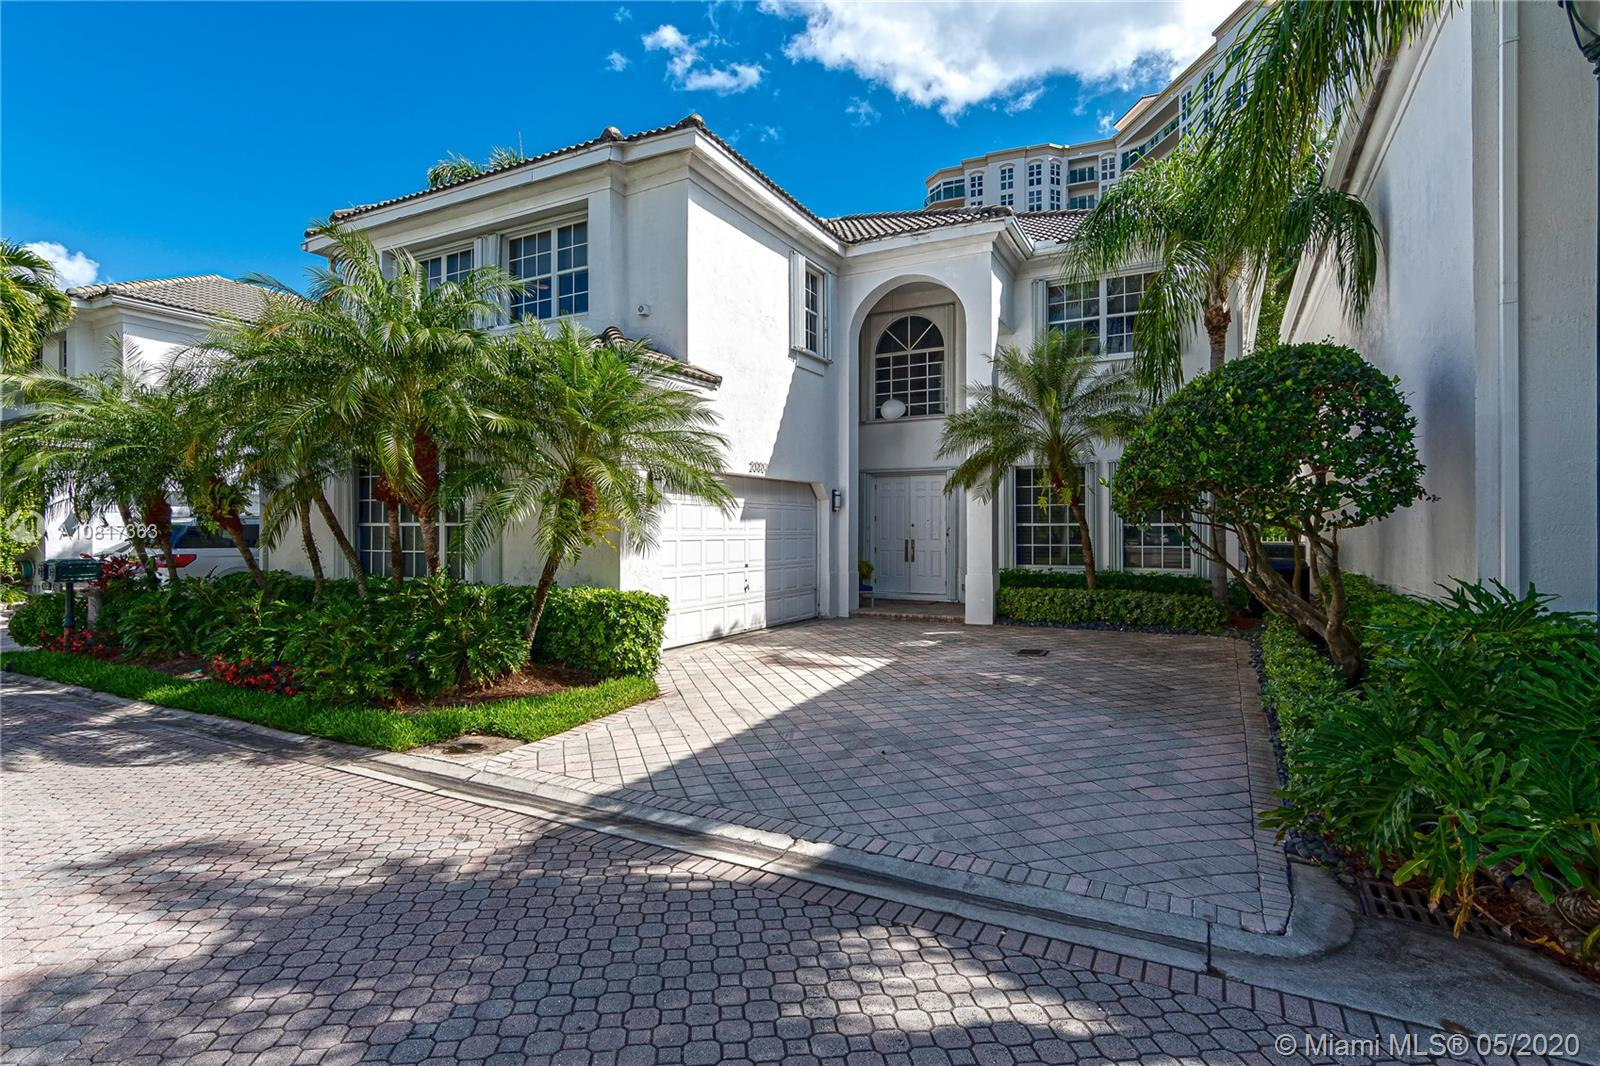 Don't miss the opportunity to live in a Prestigious Gated Community in the Heart of Aventura. This spectacular Country Club estate spacious home of|3.5 baths|4 bedrooms| with an excellent floor plan and distribution , a lot of natural light, includes an office in the second floor, a complete enclosed area for washer and dryer amazing backyard, with a built in BBQ and pool. Master Bathroom recently remodeled. Formal Living and Dining Room, plus family room.